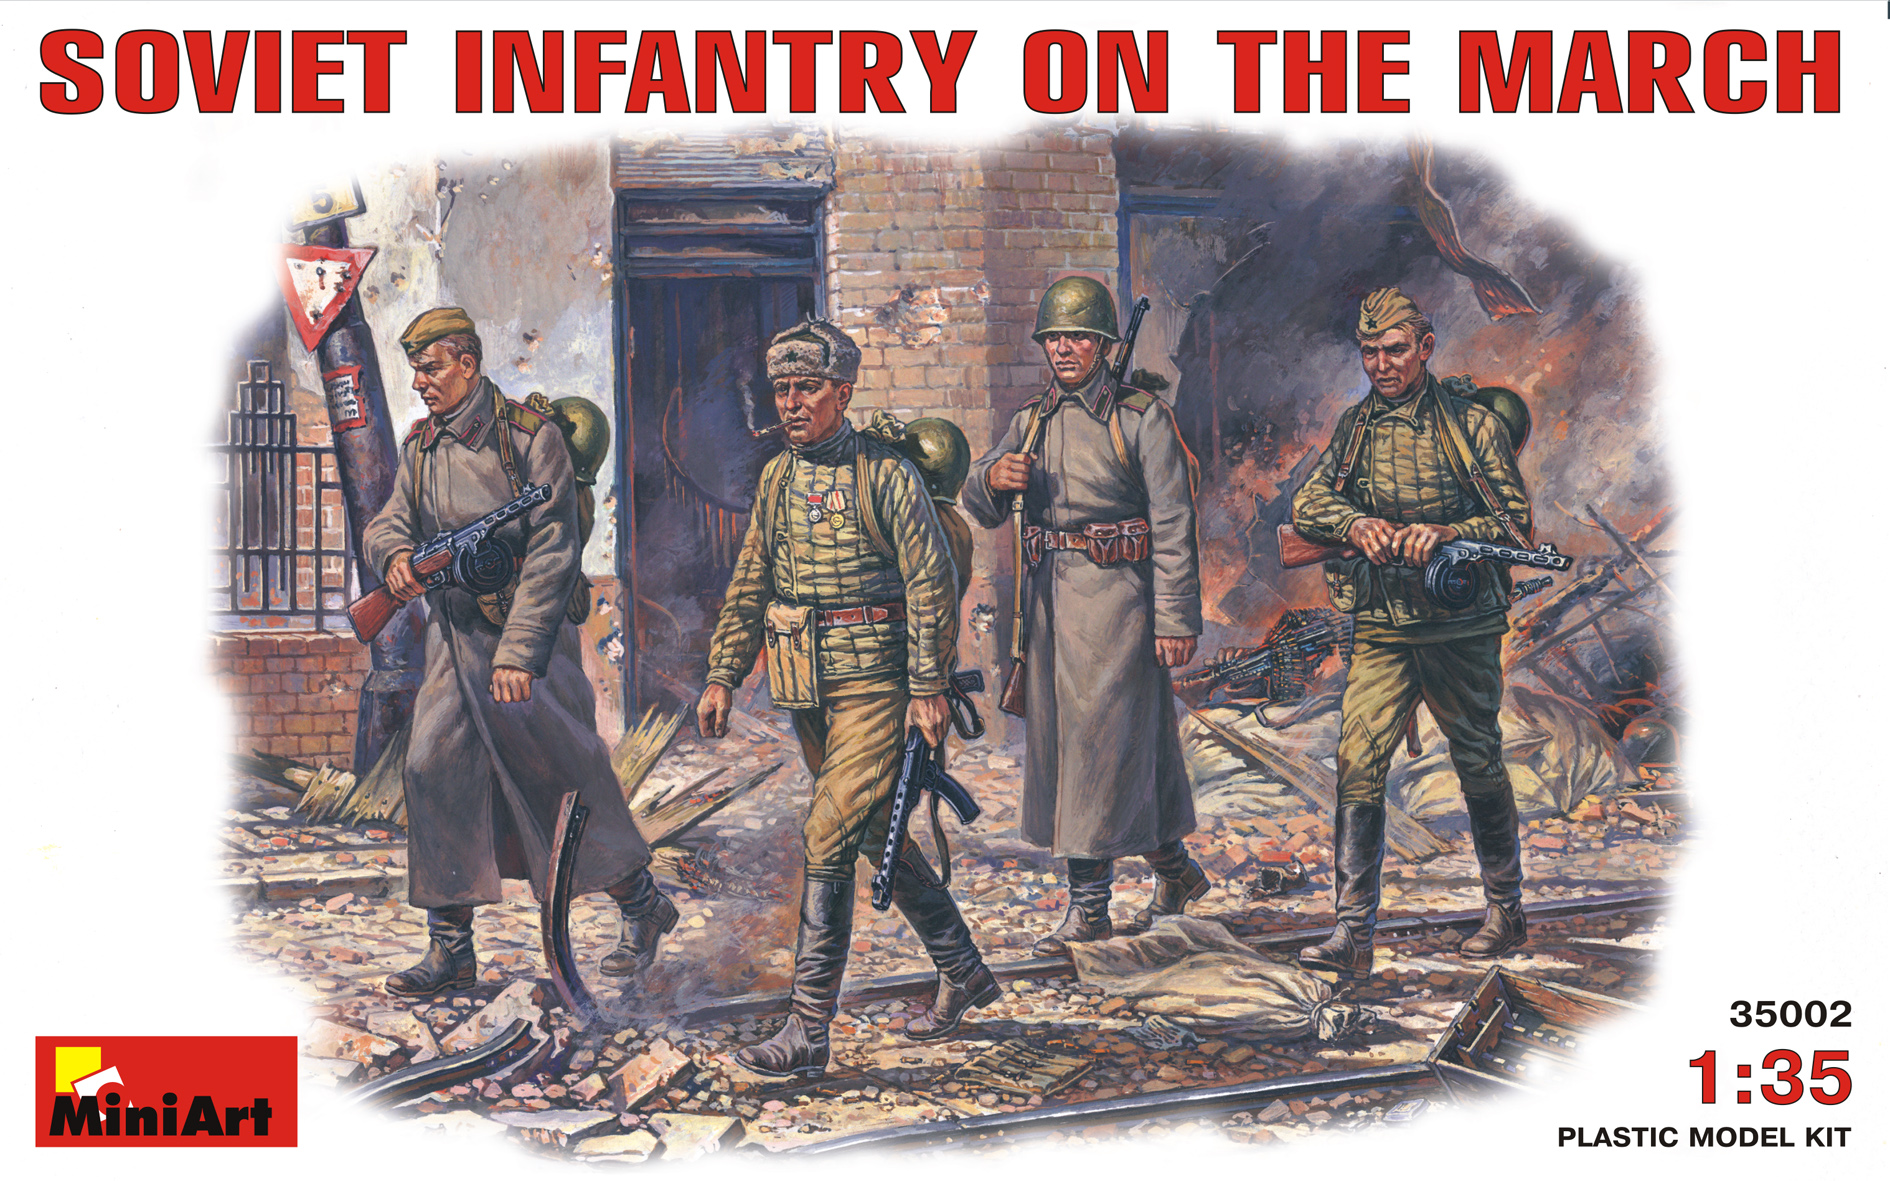 35002 SOVIET INFANTRY ON THE MARCH